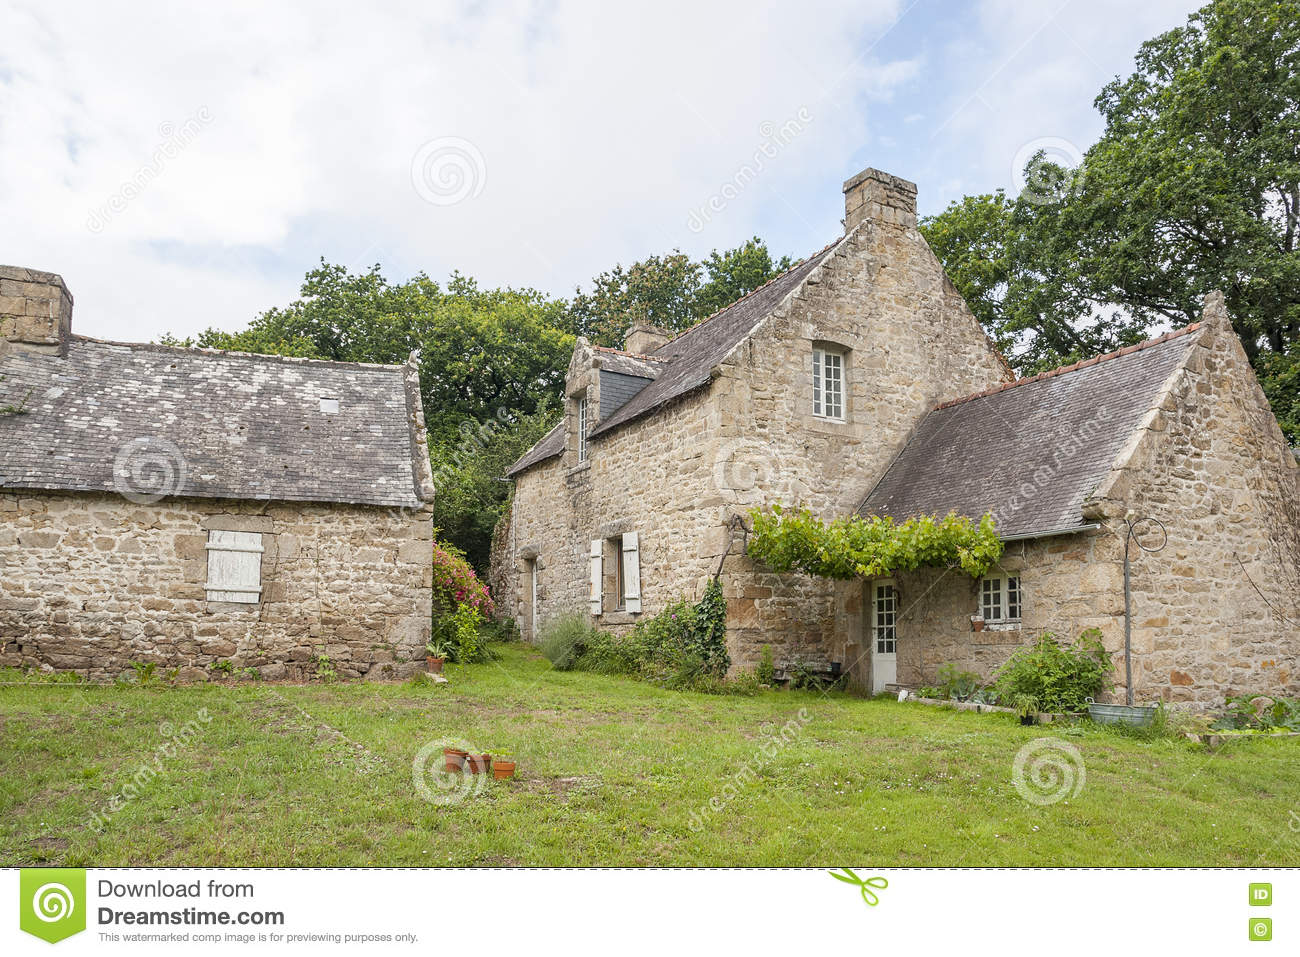 Maison bretonne traditionnelle photo stock image 76233928 - Architecture bretonne traditionnelle ...